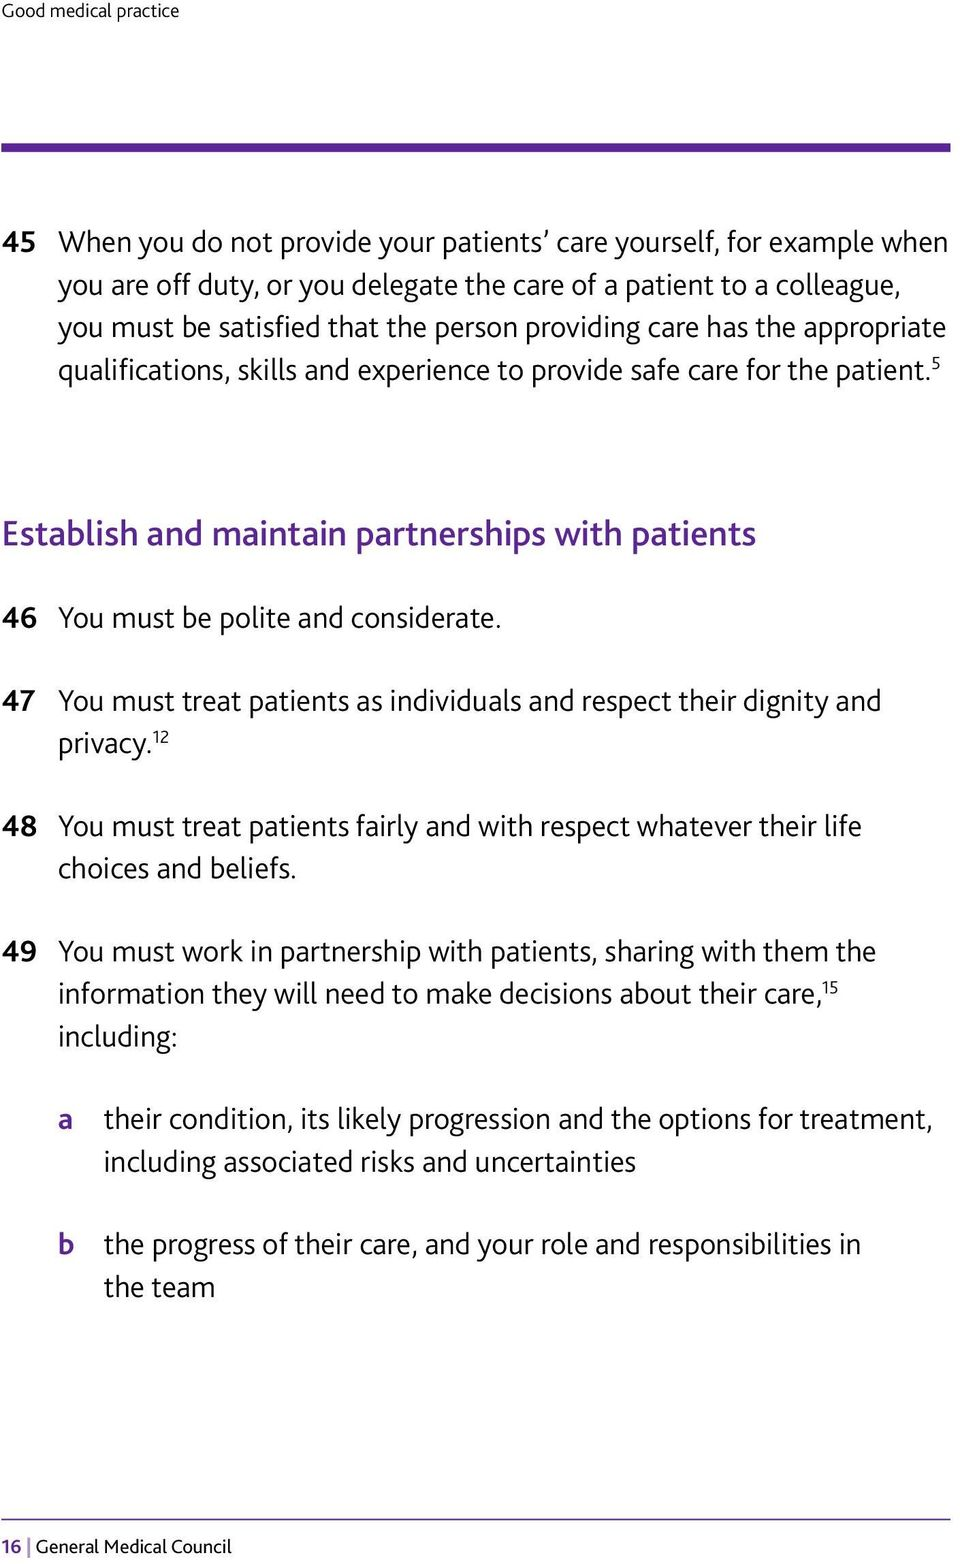 47 You must treat patients as individuals and respect their dignity and privacy. 12 48 You must treat patients fairly and with respect whatever their life choices and beliefs.